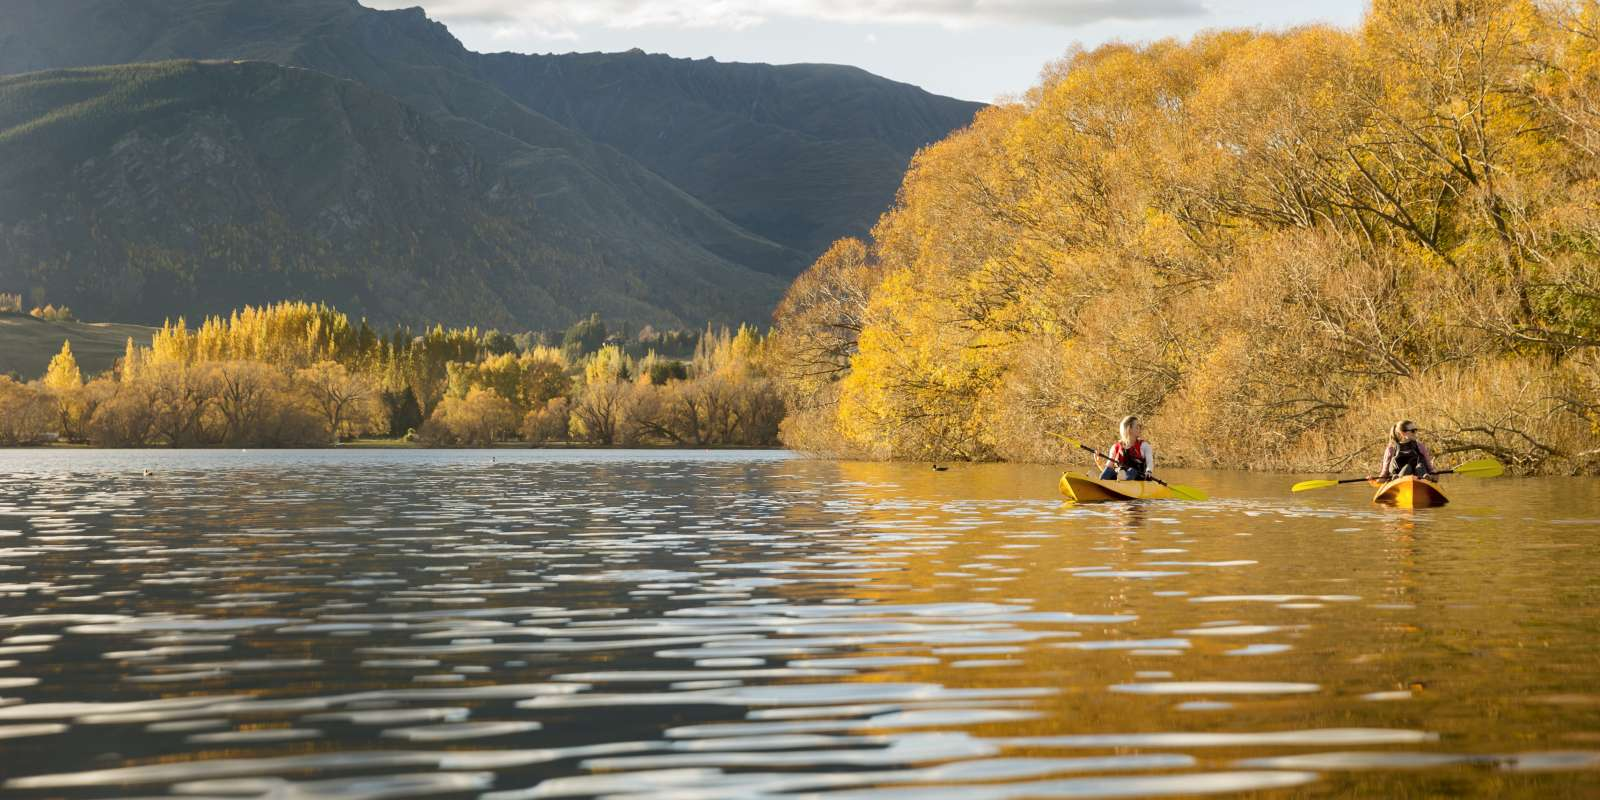 Kayaking Lake Hayes in Autumn